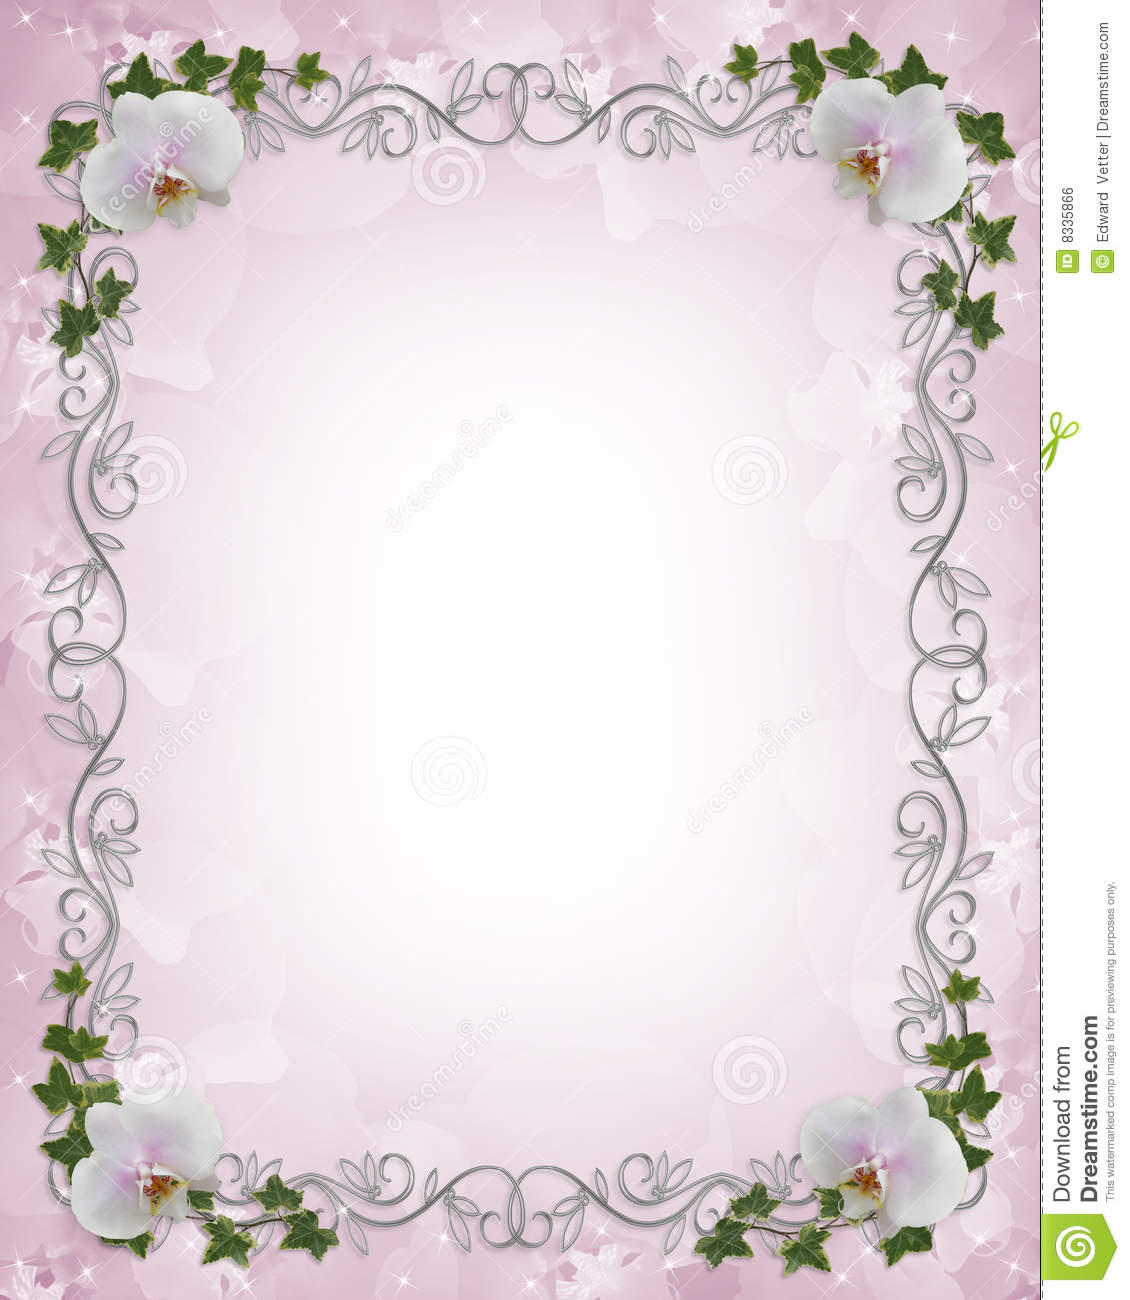 Wedding invitation border orchids ivy stock illustration wedding invitation border orchids ivy stock illustration illustration of elegant design 8335866 toneelgroepblik